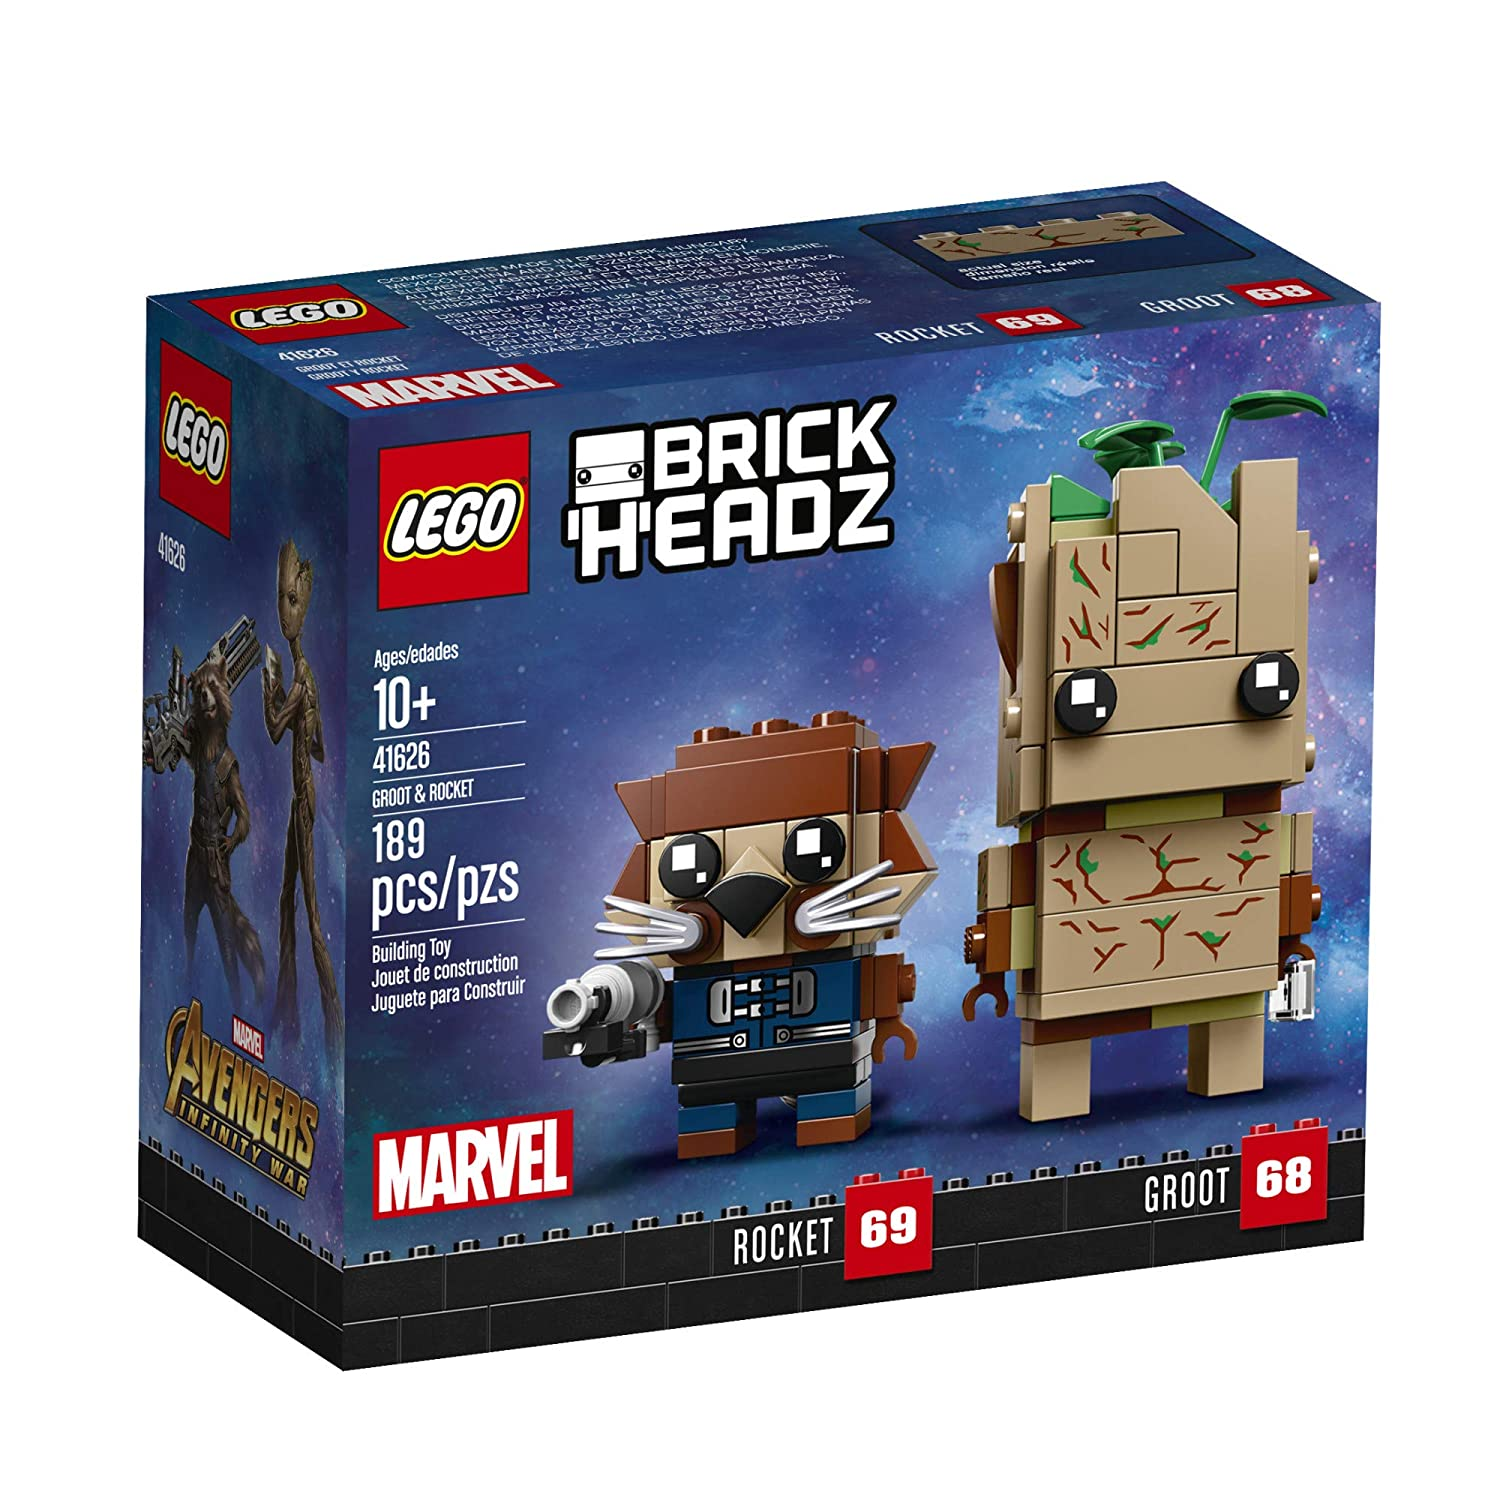 Top 11 Best Lego Brickheadz Reviews in 2019 5